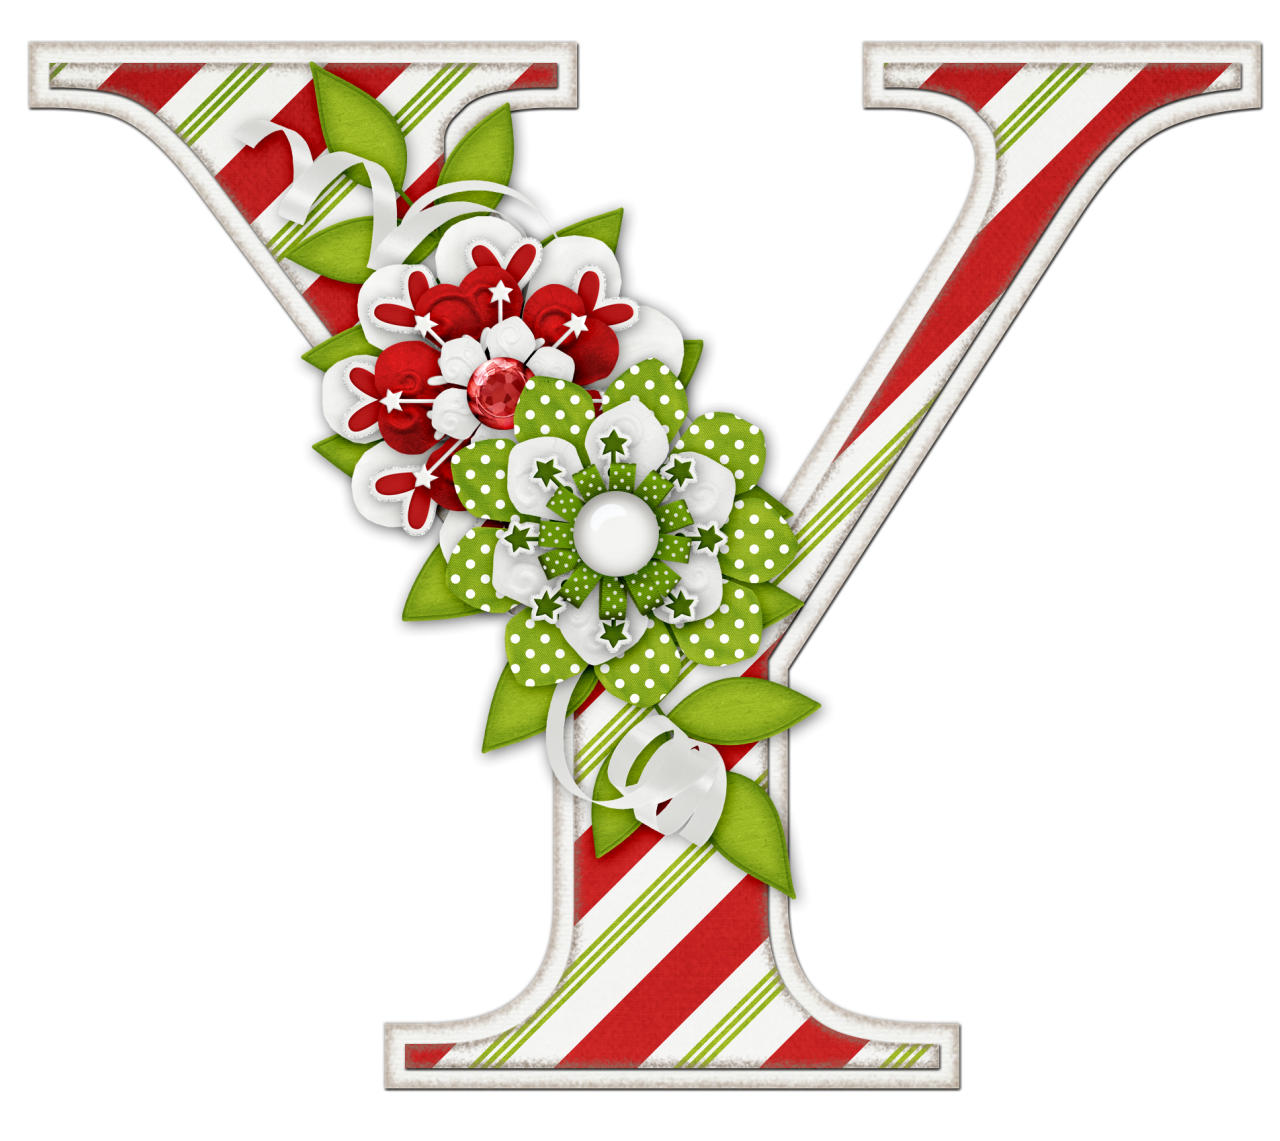 Merry Christmas Letter T.Photo From Album Peppermint Patty On Pp Alphabet Art